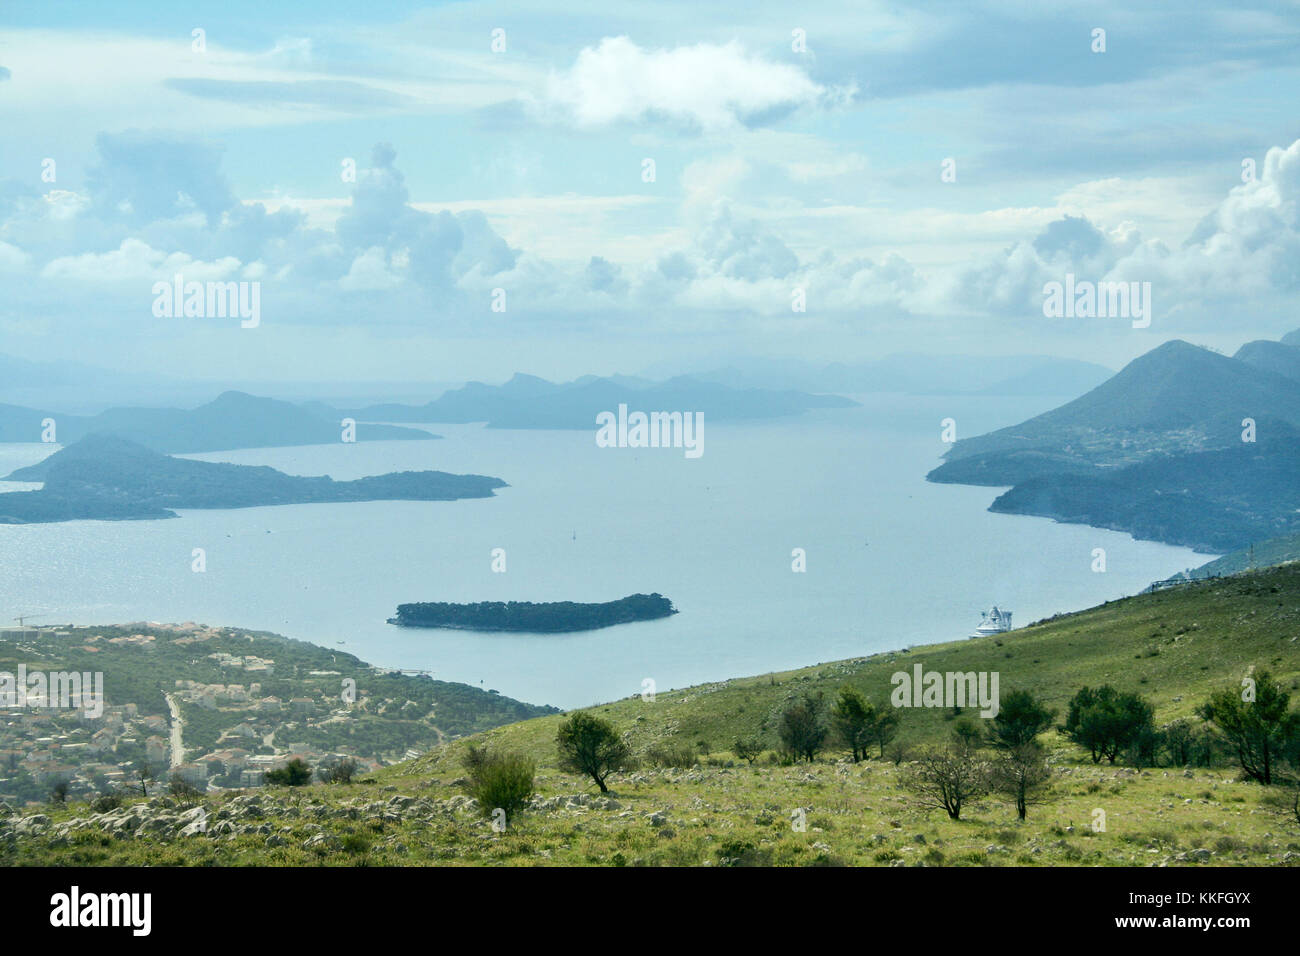 Croatian islands on the Adriatic sea taken from a mountain of Dubrovnik during a sunny summer afternoon. Croatia - Stock Image